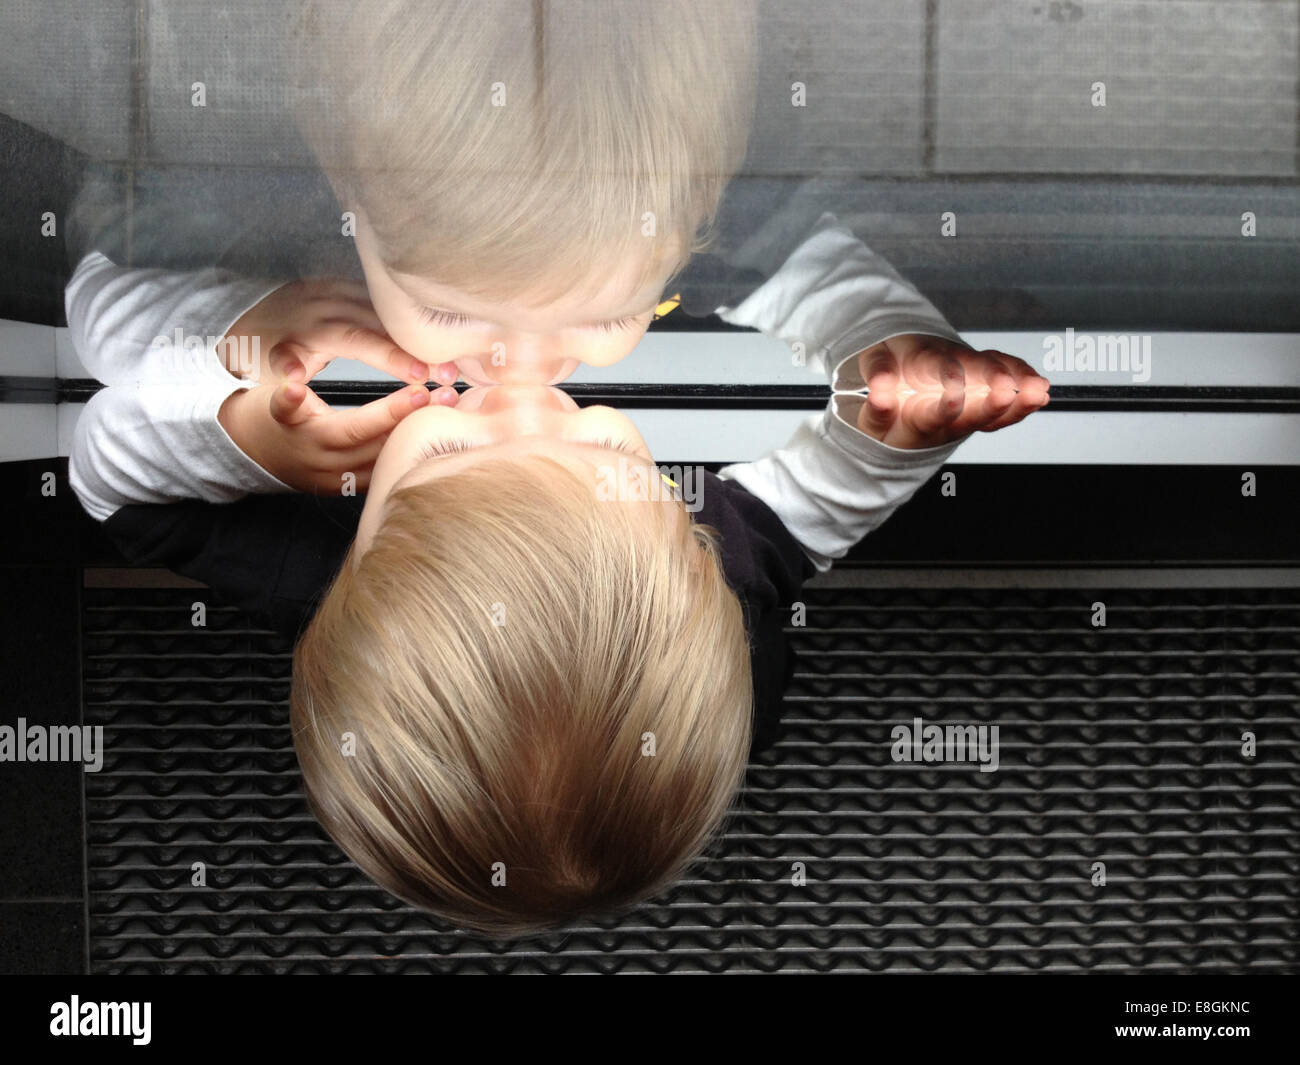 Stockholm, Sweden A Little Boy Looking Through A Window And See His Own Reflection - Stock Image